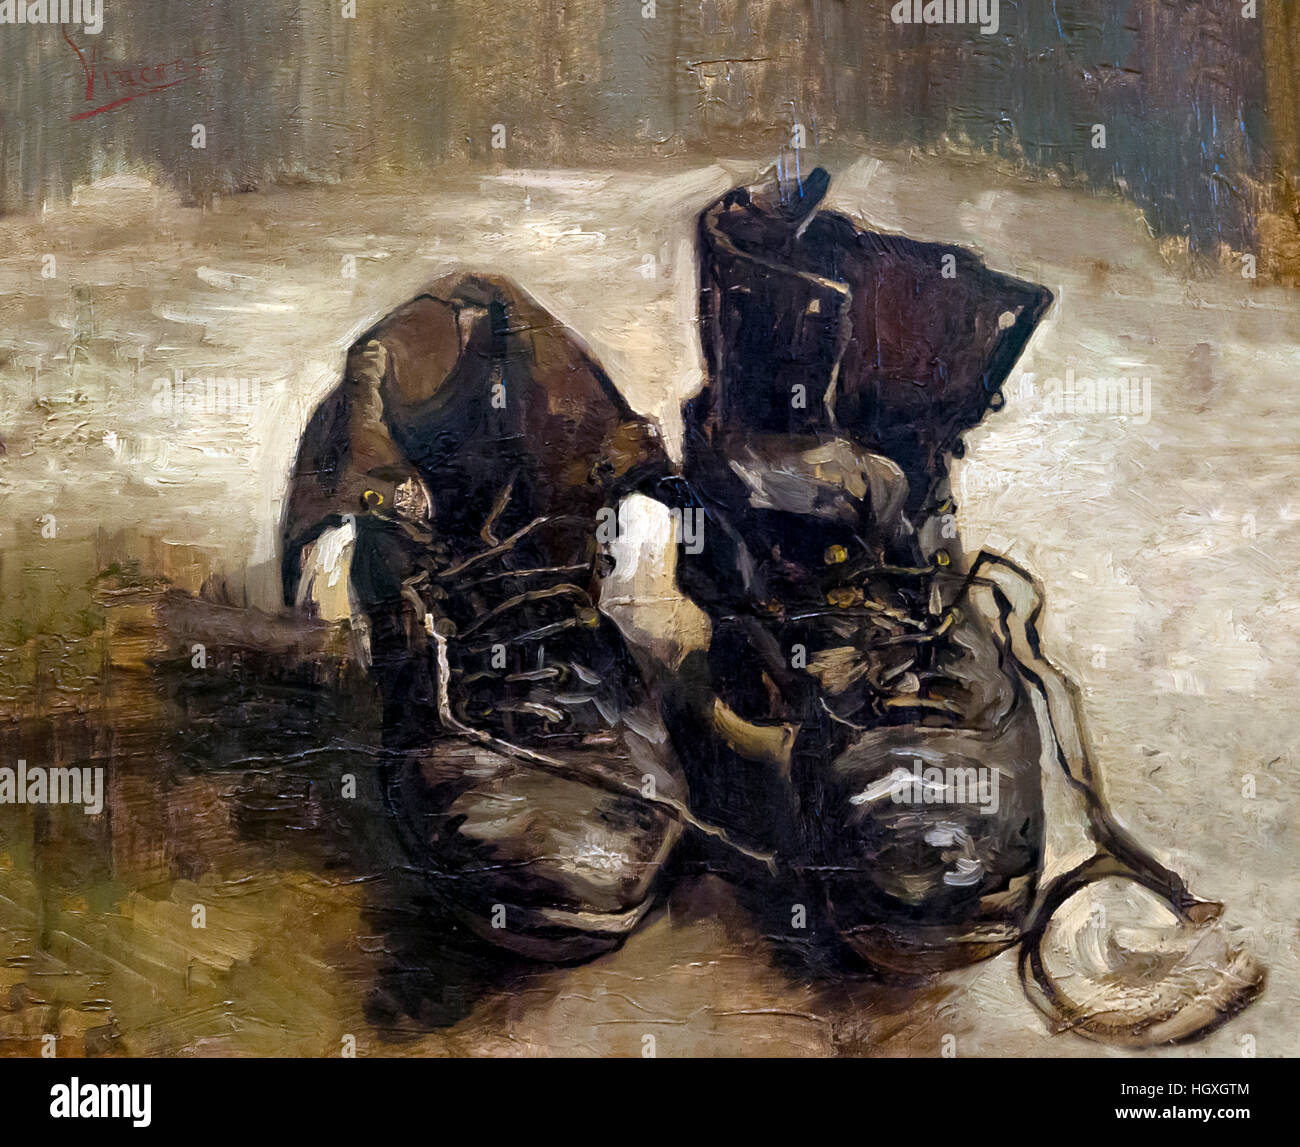 A Pair of Shoes, by Vincent van Gogh,  1886, Netherlands, Europe - Stock Image